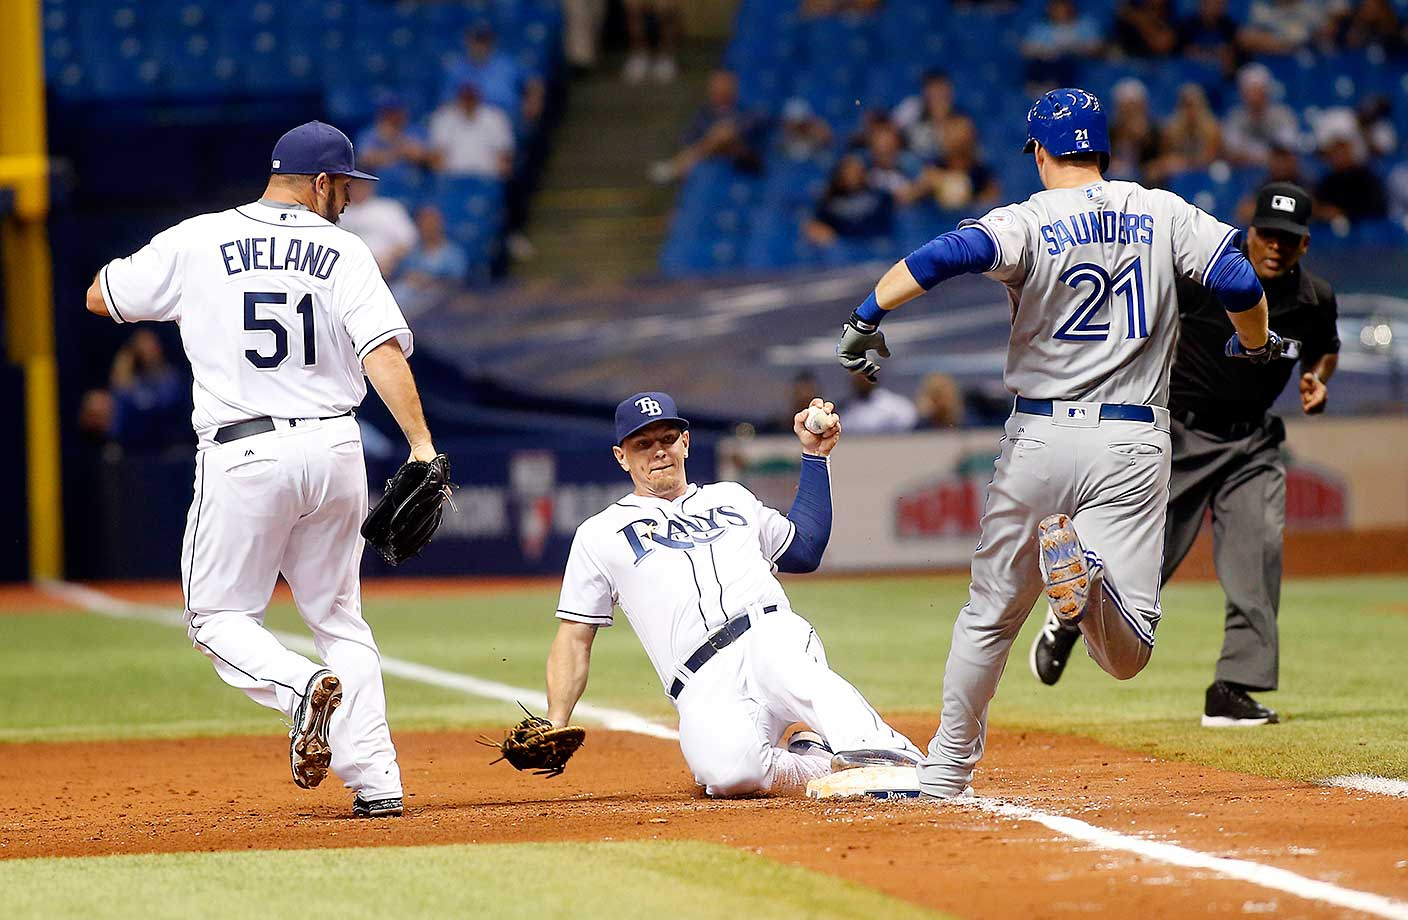 First baseman Logan Morrison of Tampa Bay gets the out at first base on Michael Saunders of Toronto as pitcher Dana Eveland runs in to back up the play.